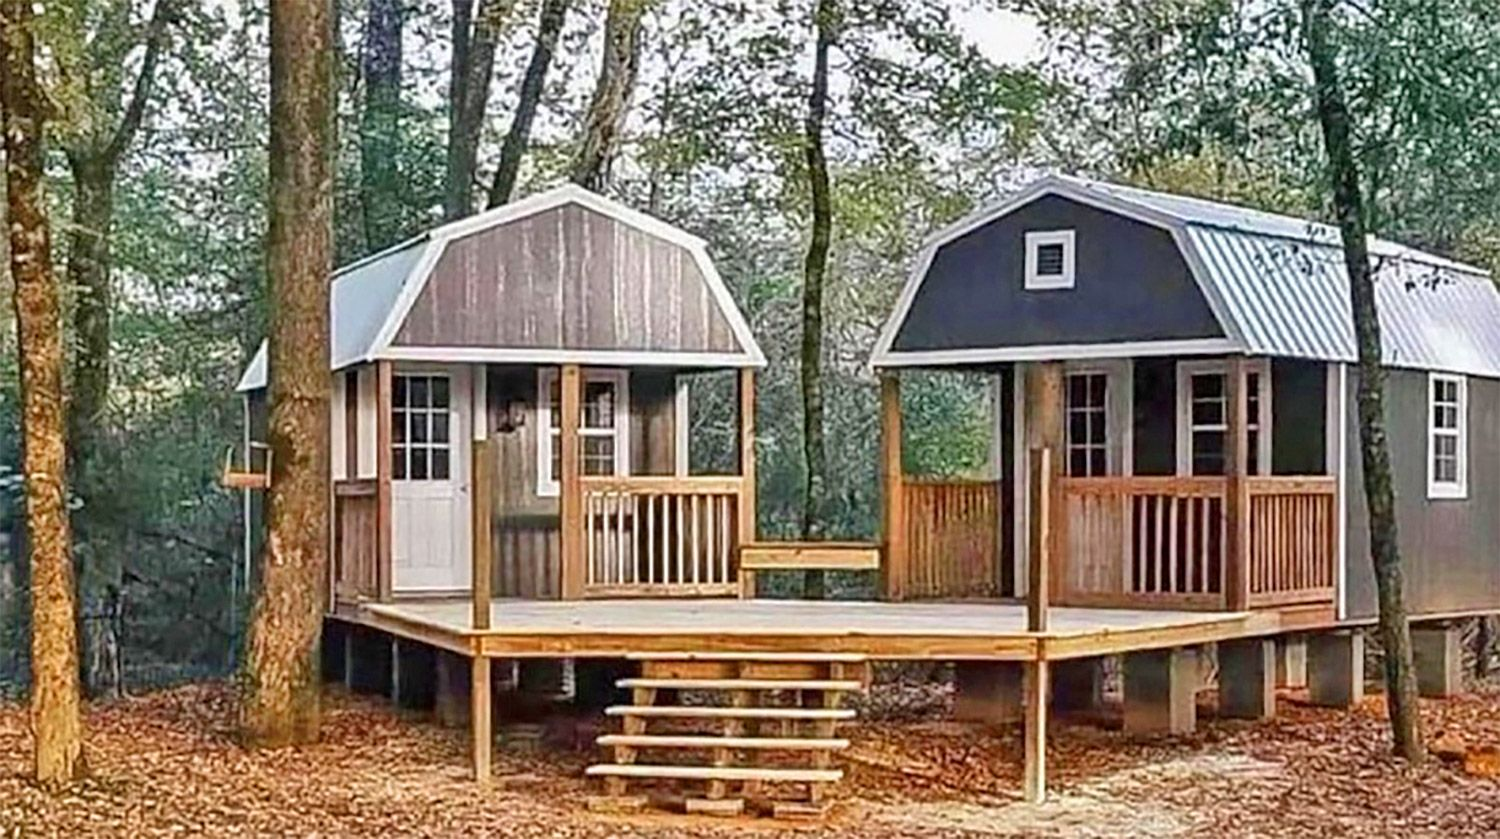 The We Shed Is A Dual Shed For Him And Her With A Conjoined Deck In 2020 Shed To Tiny House Portable Buildings Shed Homes